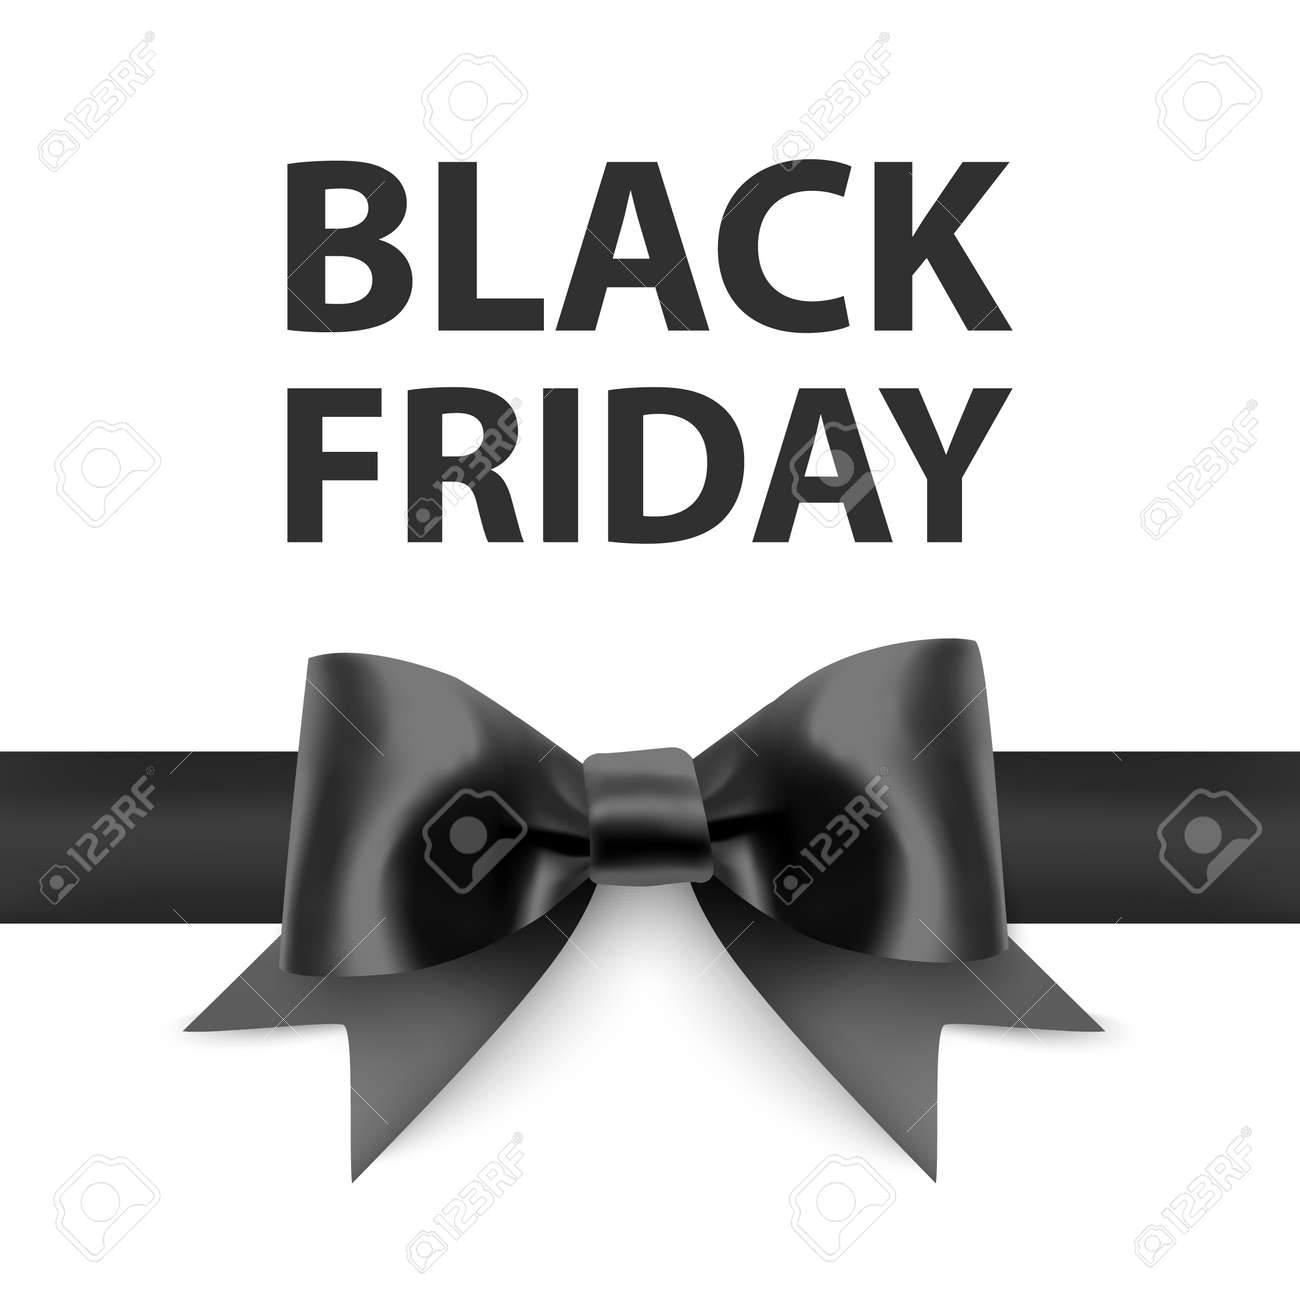 Black friday greeting card with a big black bow, a template for your design, a holiday card, Vector format - 172958465